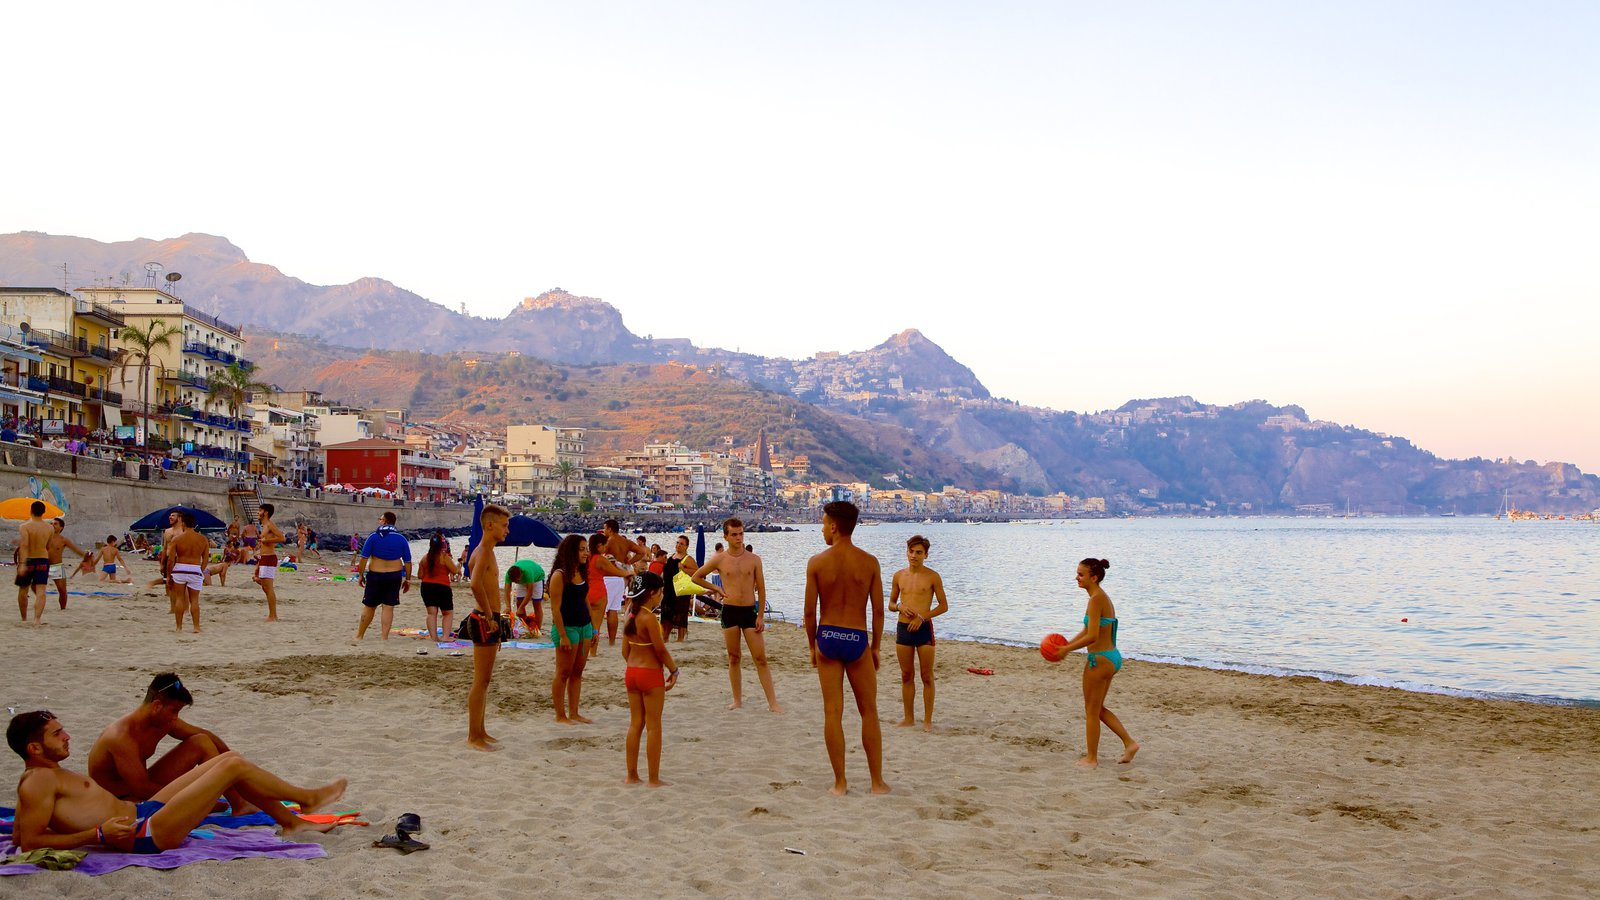 Giardini Naxos featuring a sandy beach as well as a large group of people